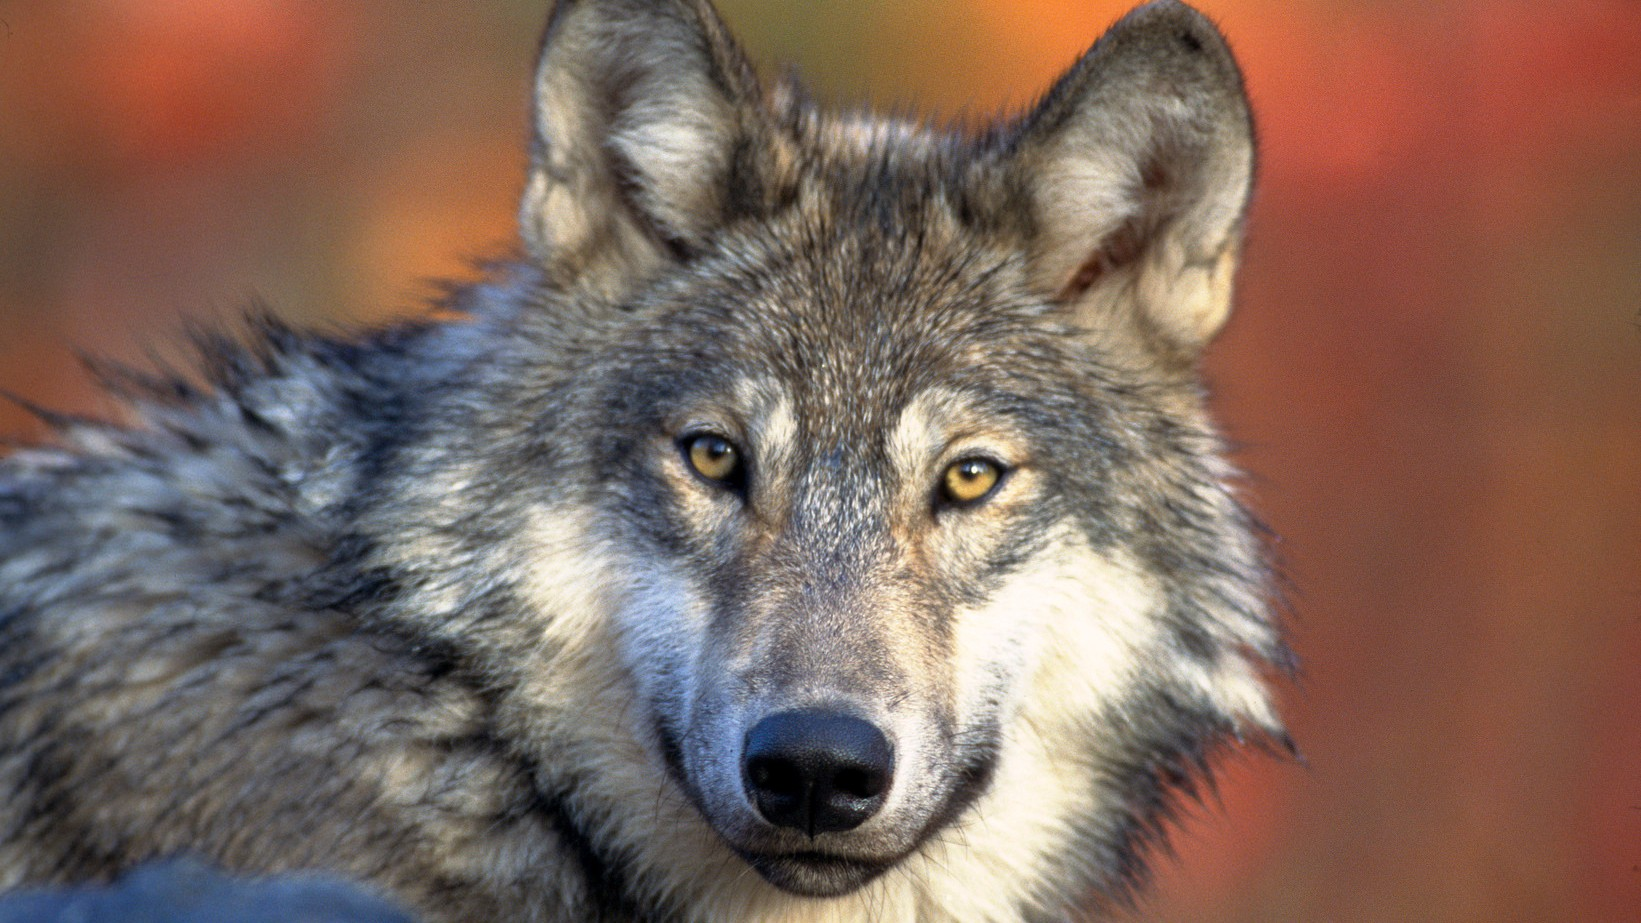 Members of Congress Want to Remove the Gray Wolf From the Endangered Species Act